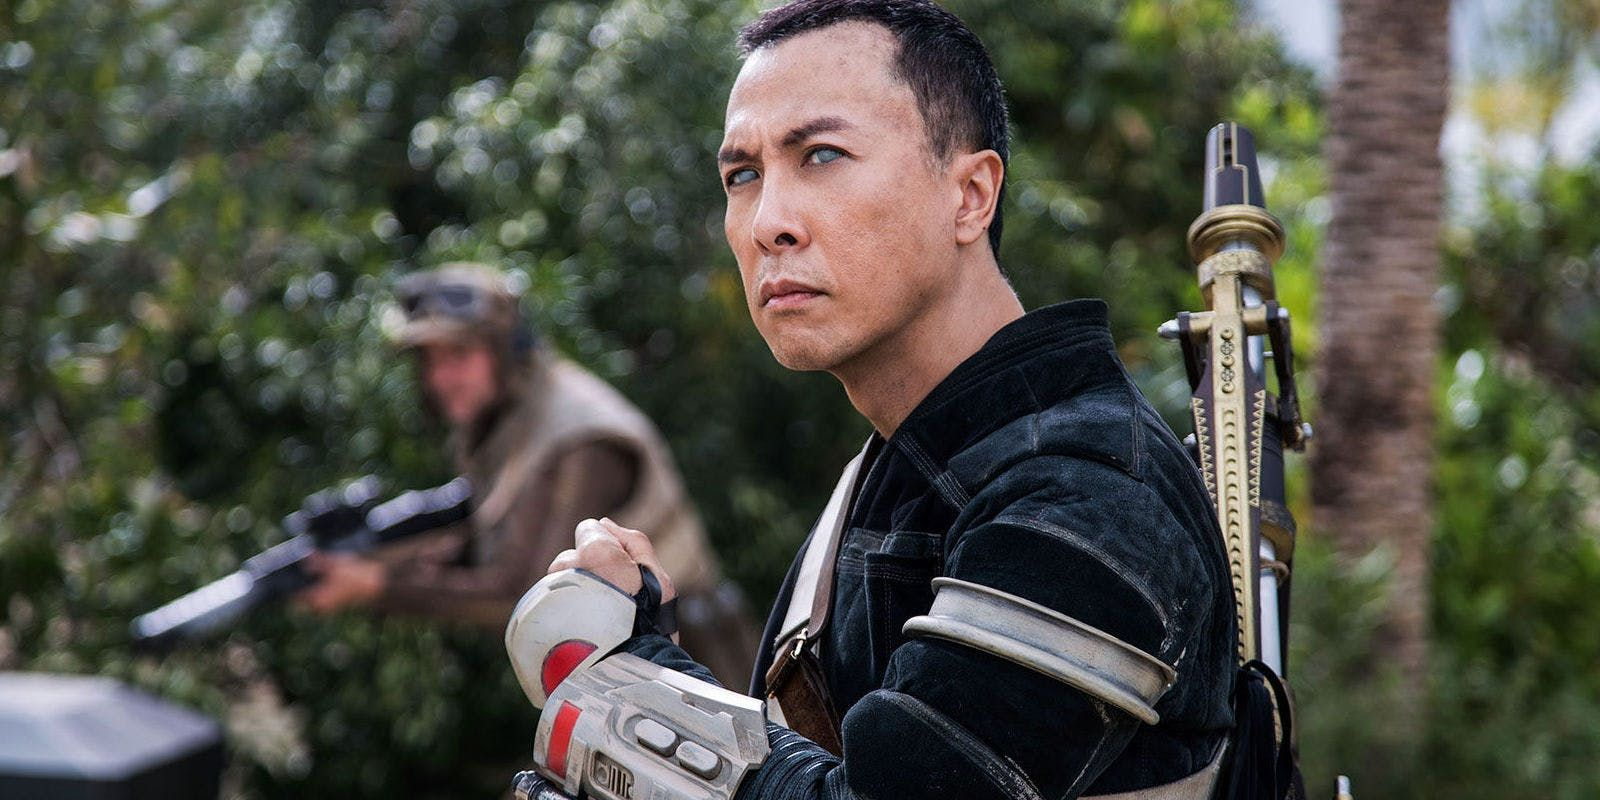 Rogue One's Donnie Yen Performs Bottlecap Challenge Blindfolded